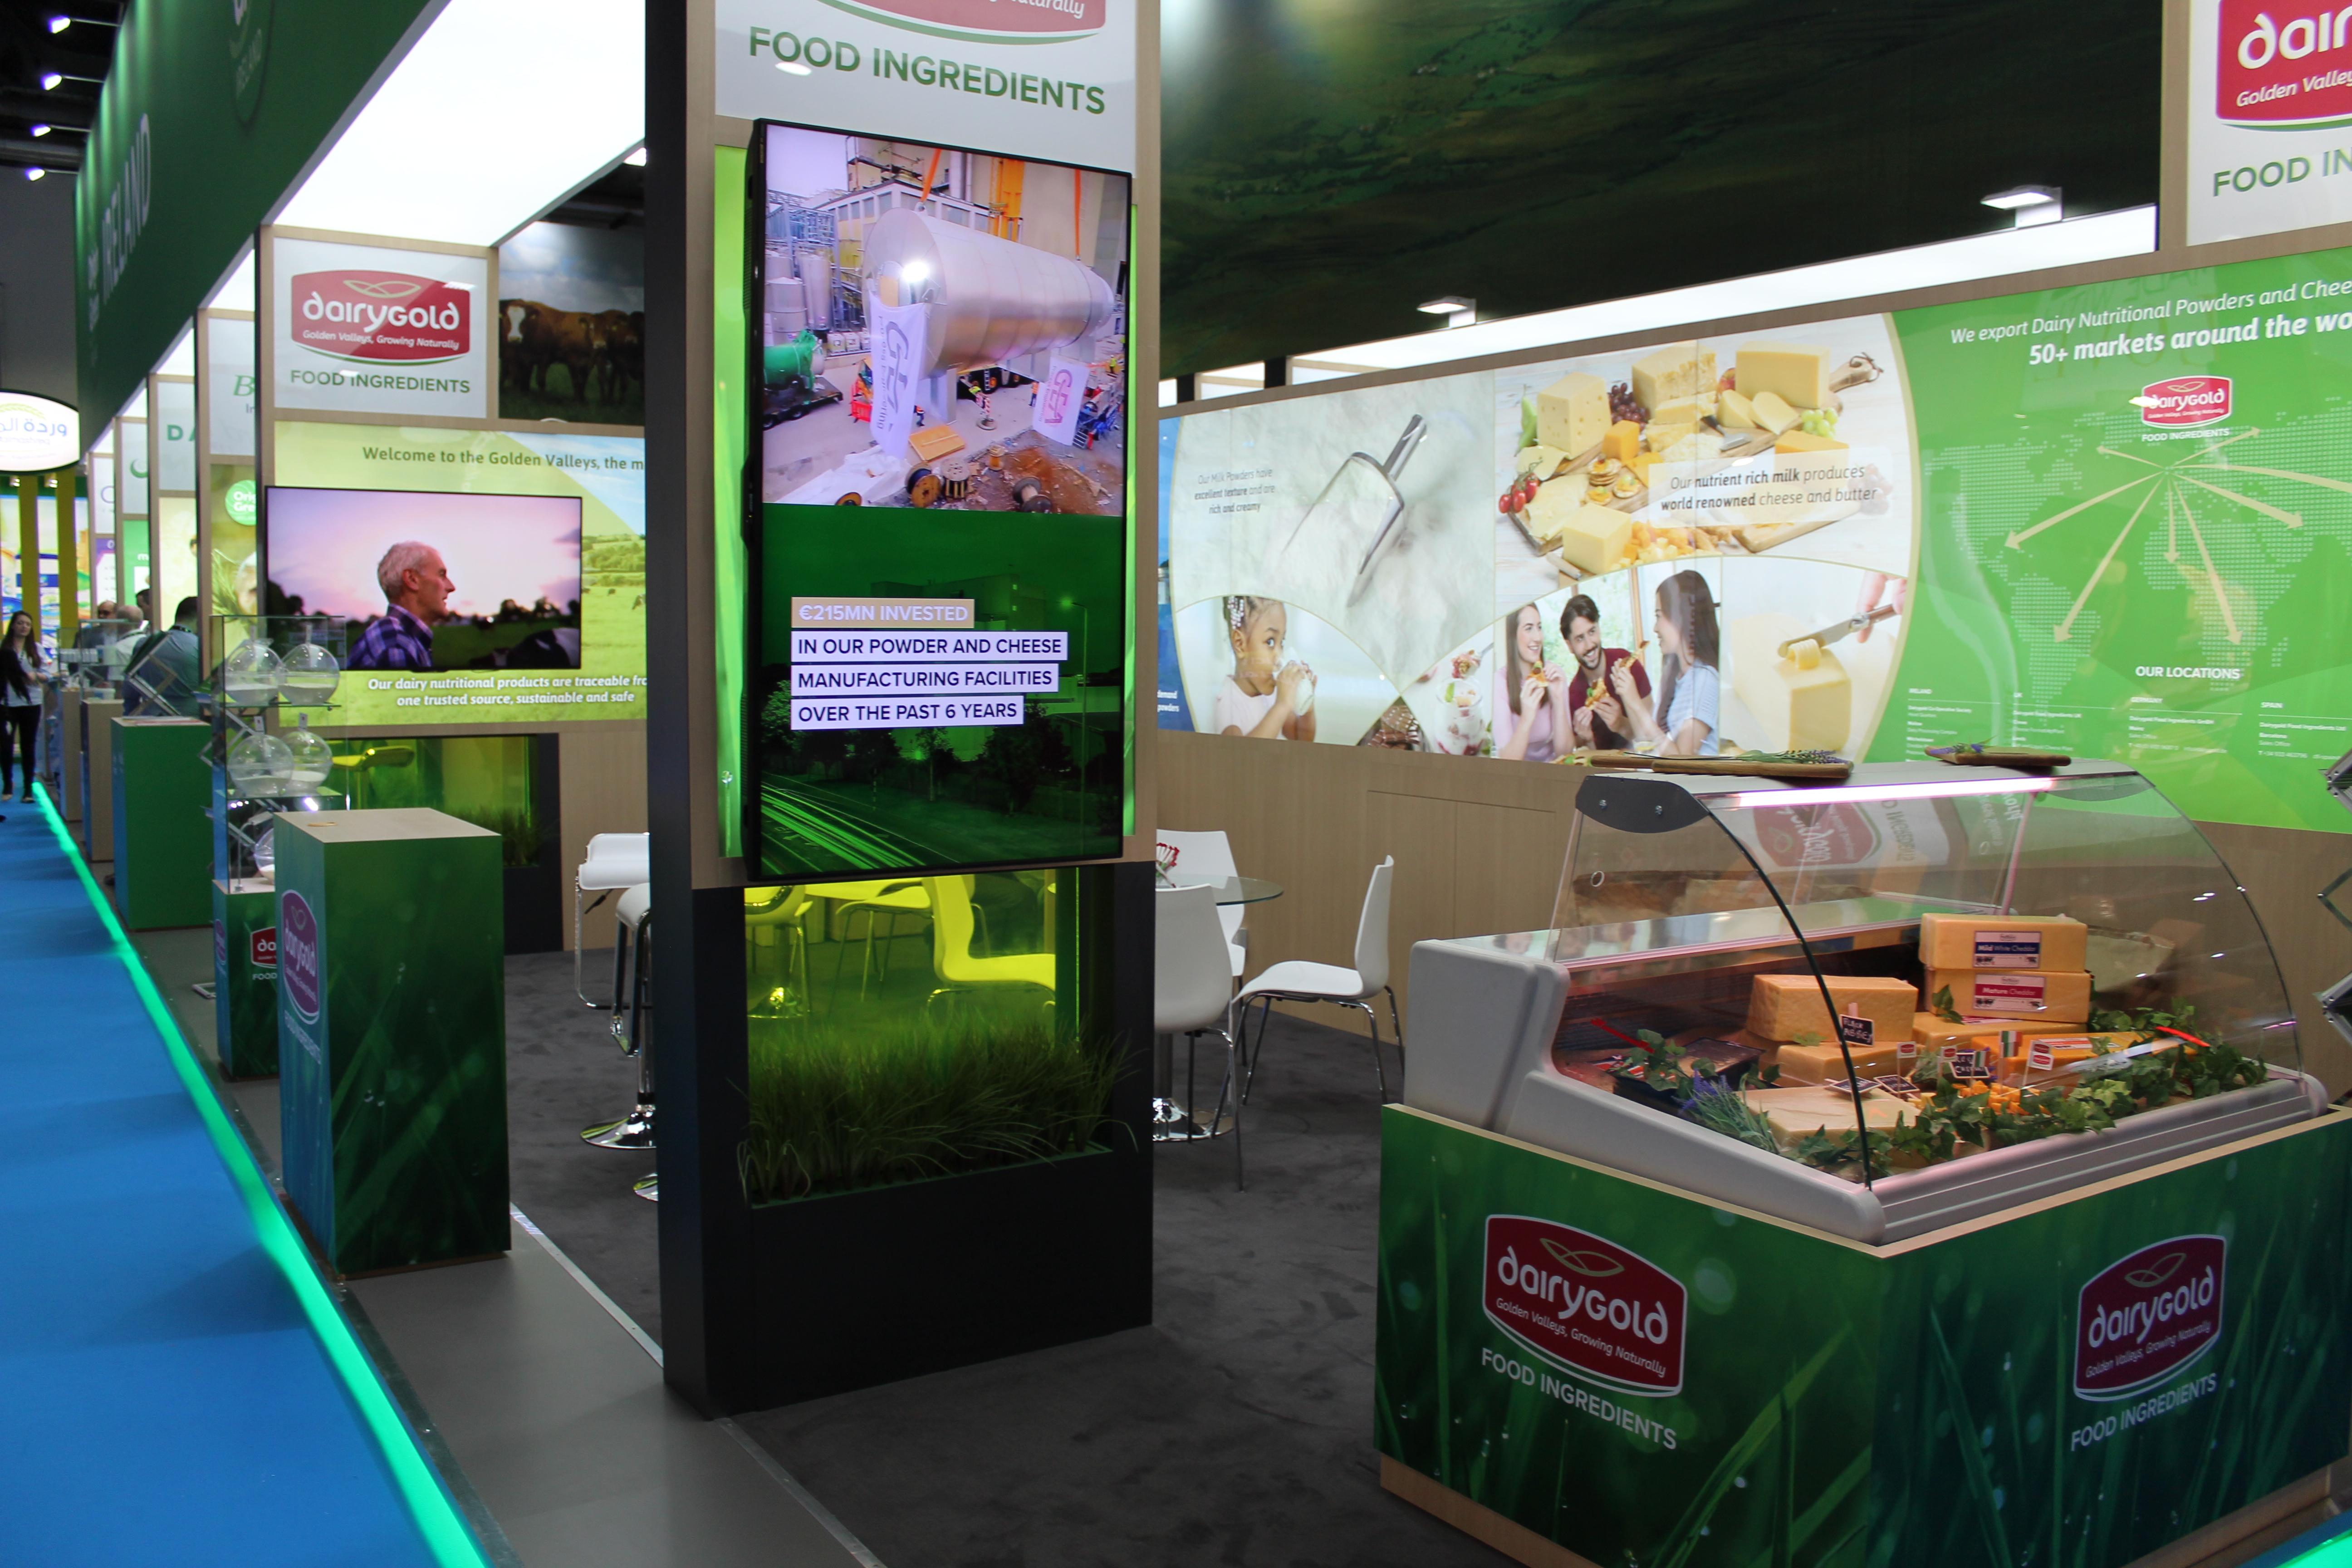 Dairygold exhibits at Gulfood 2018